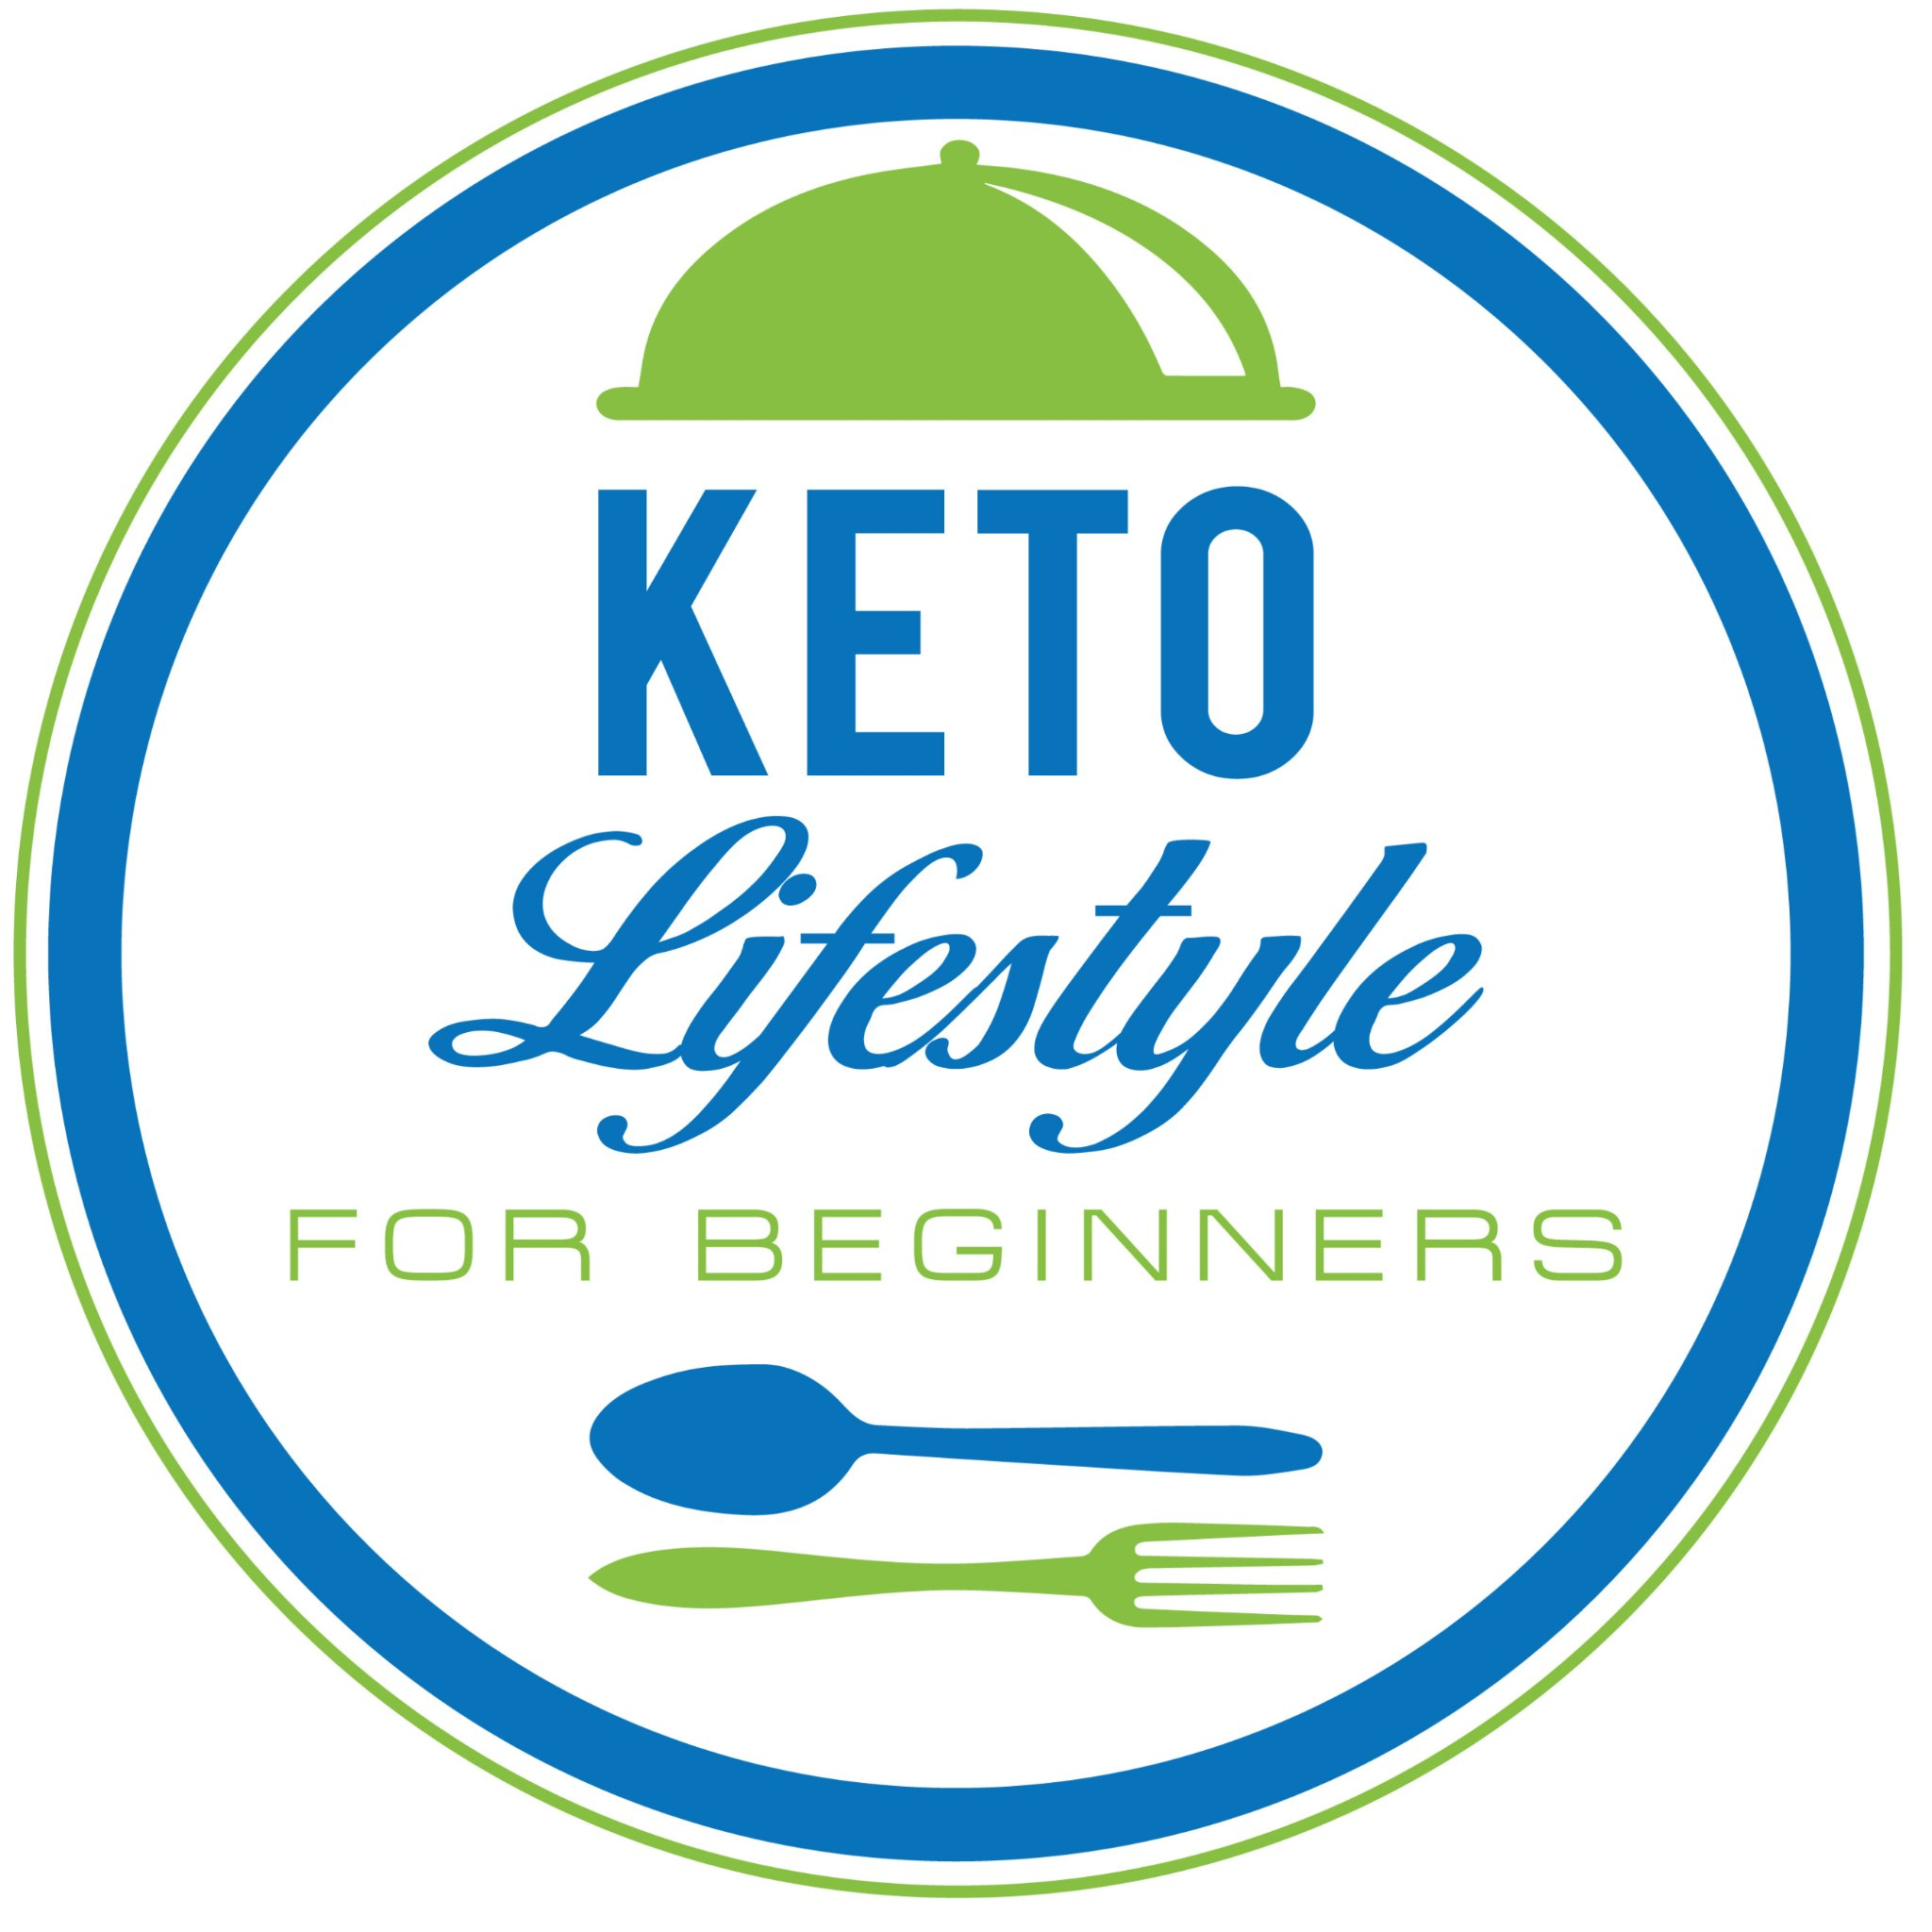 Keto Lifestyle For Beginners